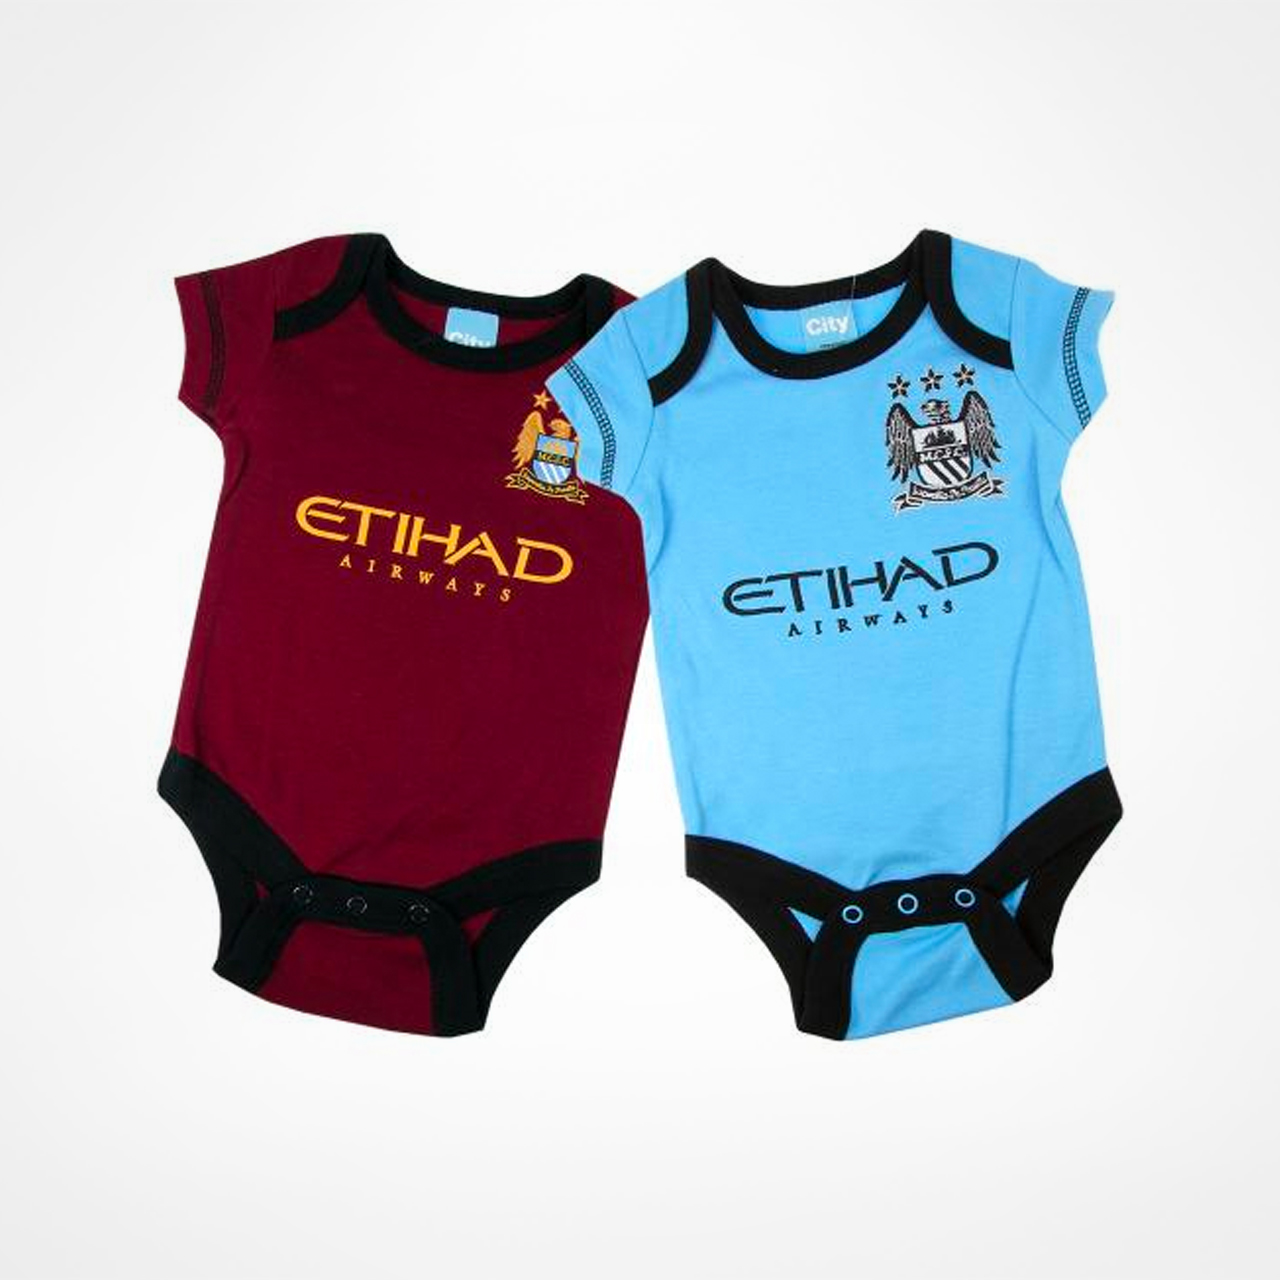 manchester city 2 pack kort rmad body hos supporterprylar. Black Bedroom Furniture Sets. Home Design Ideas